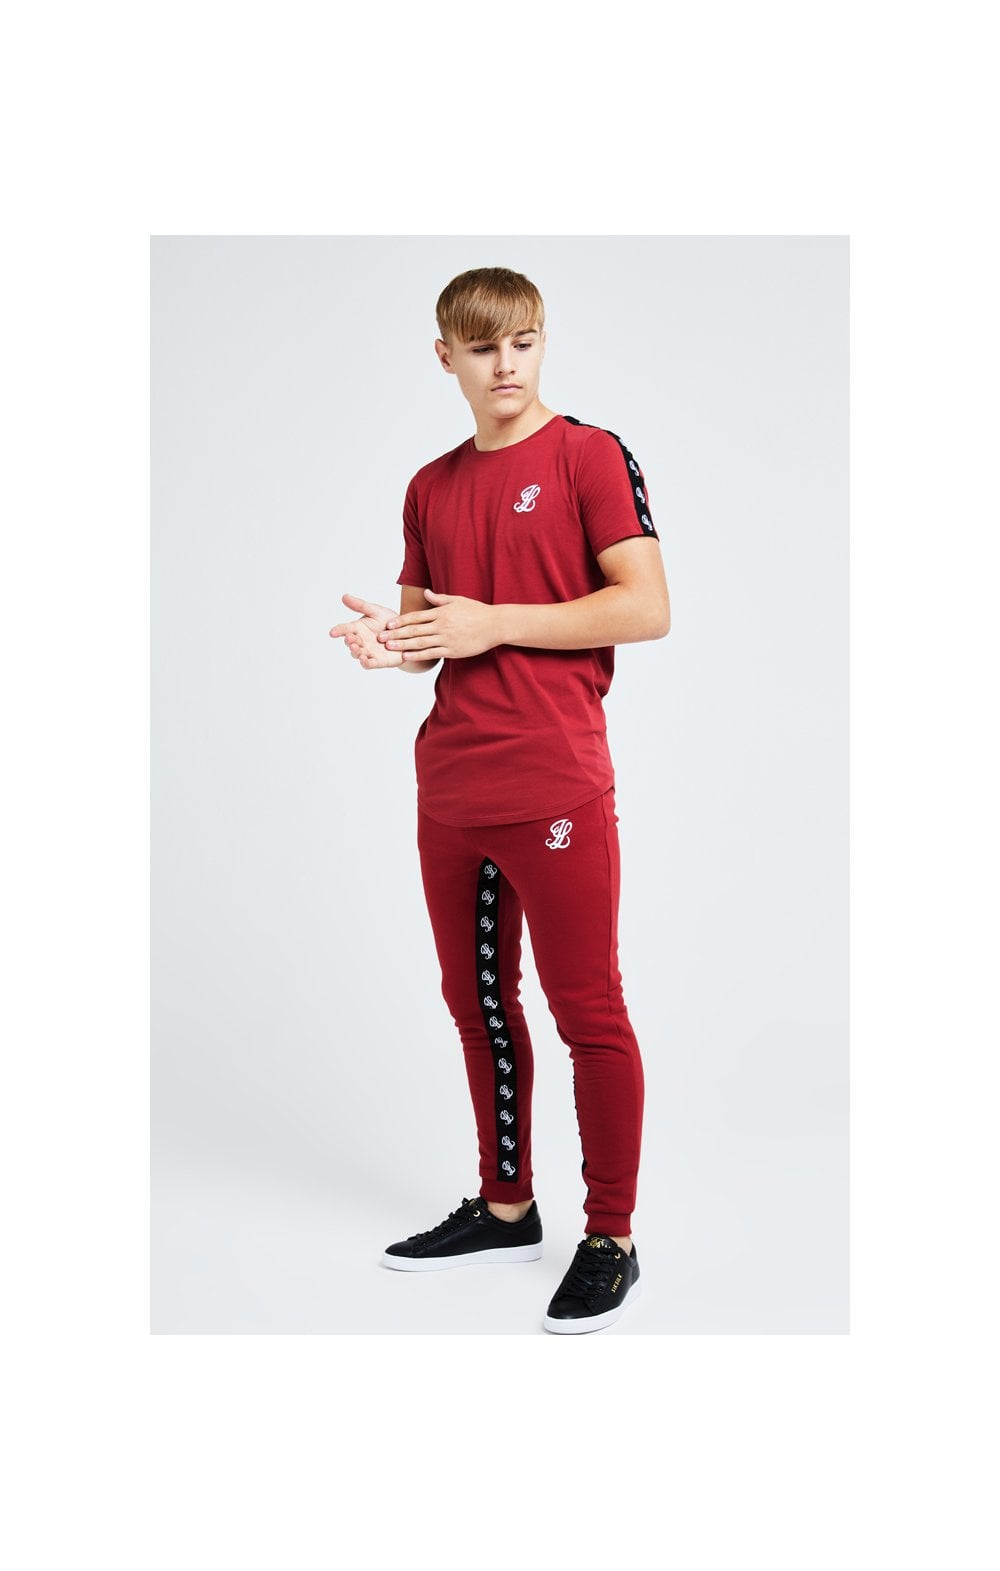 Illusive London Gravity Tape Tee - Red (2)